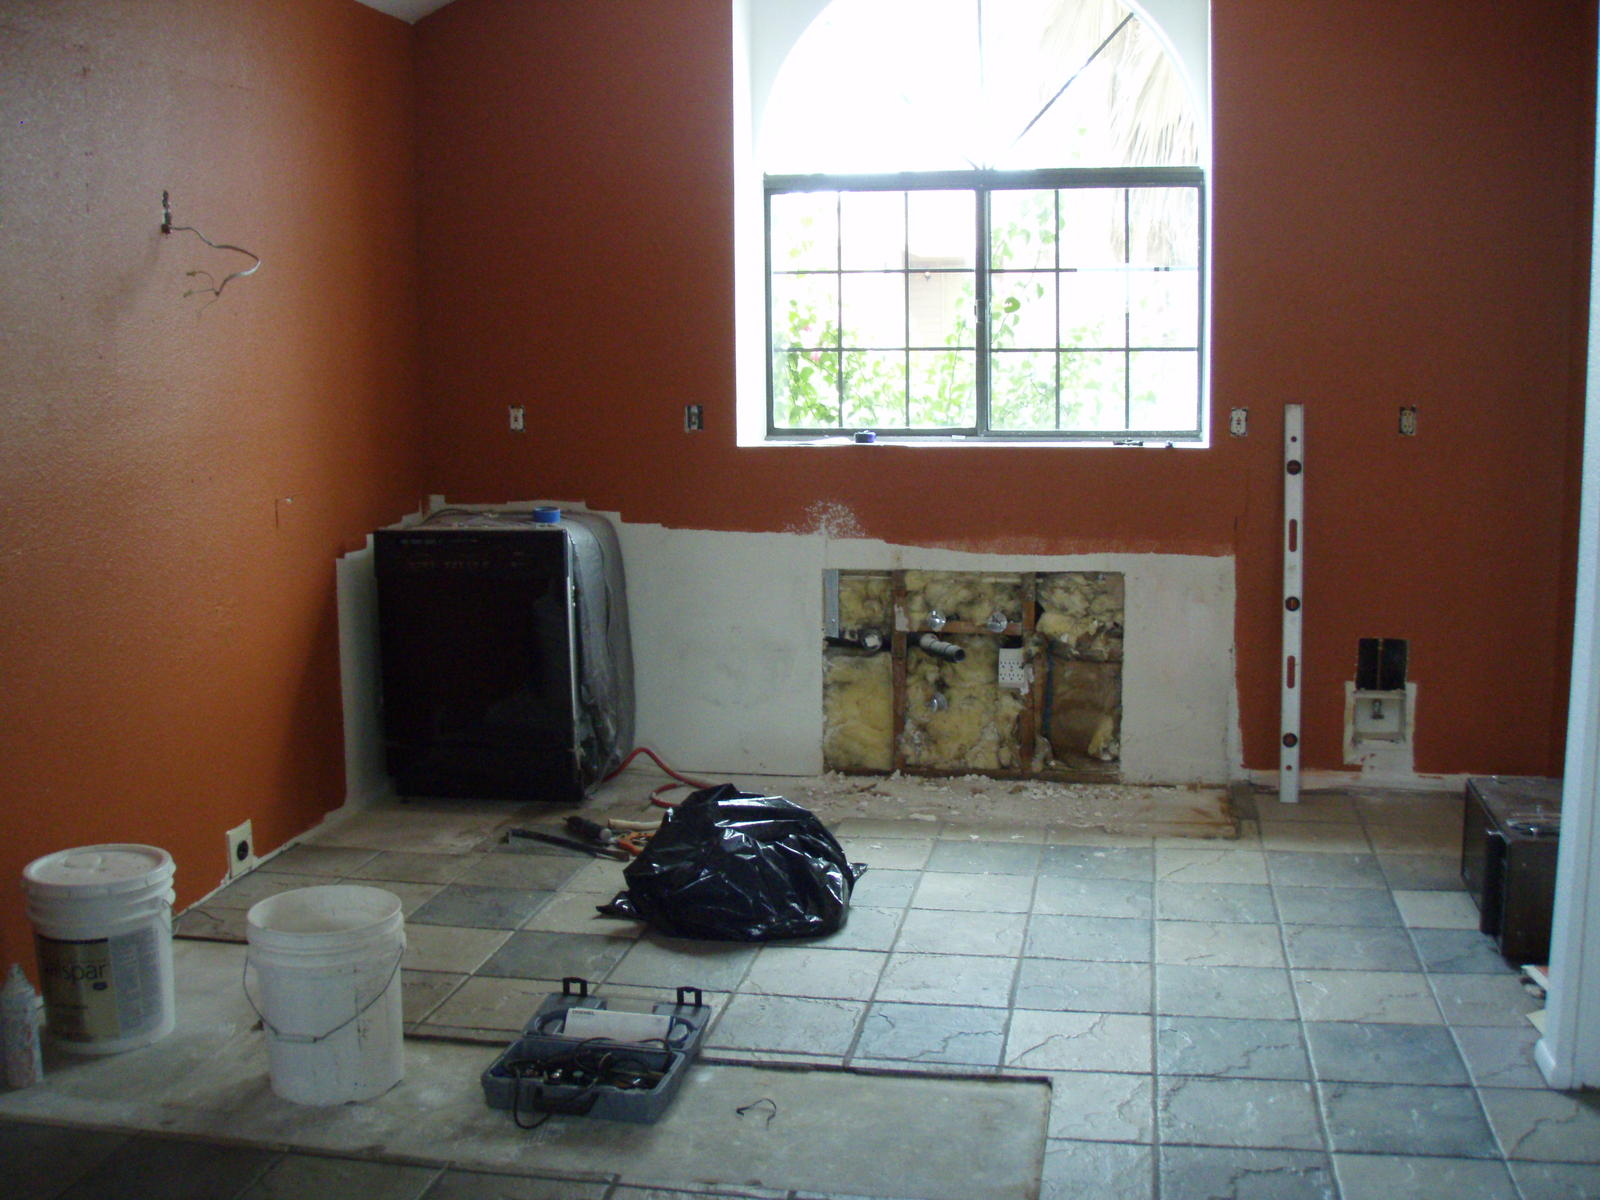 Peel And Stick Tile Ash And Orange The Importance Of A Properly - Unlevel basement floor